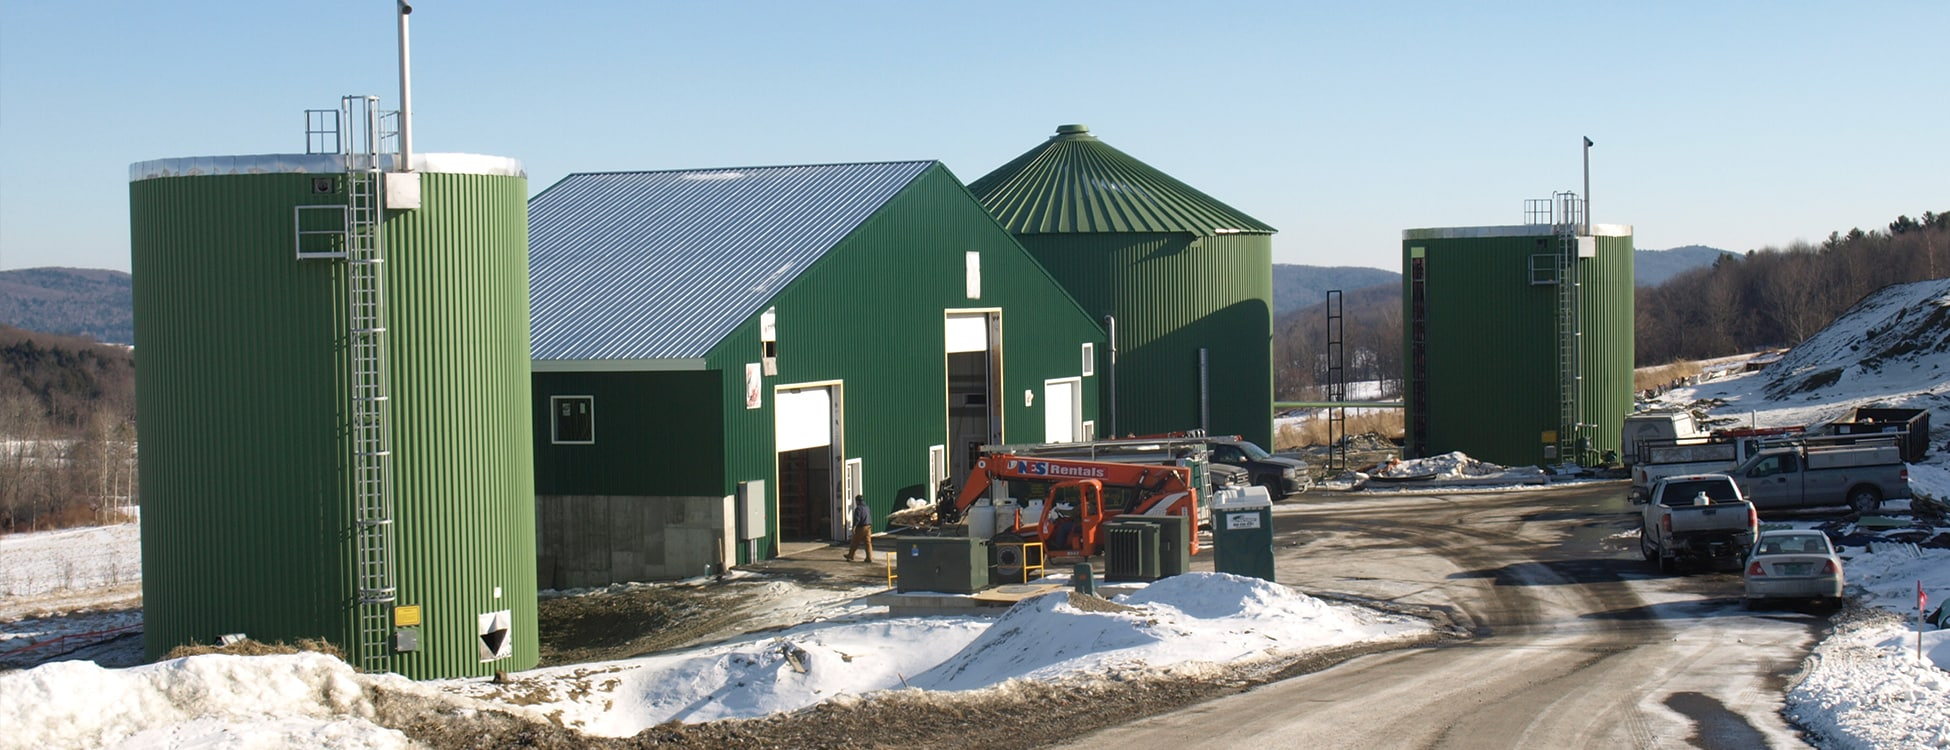 digester, Randolph Center campus, renewable energy